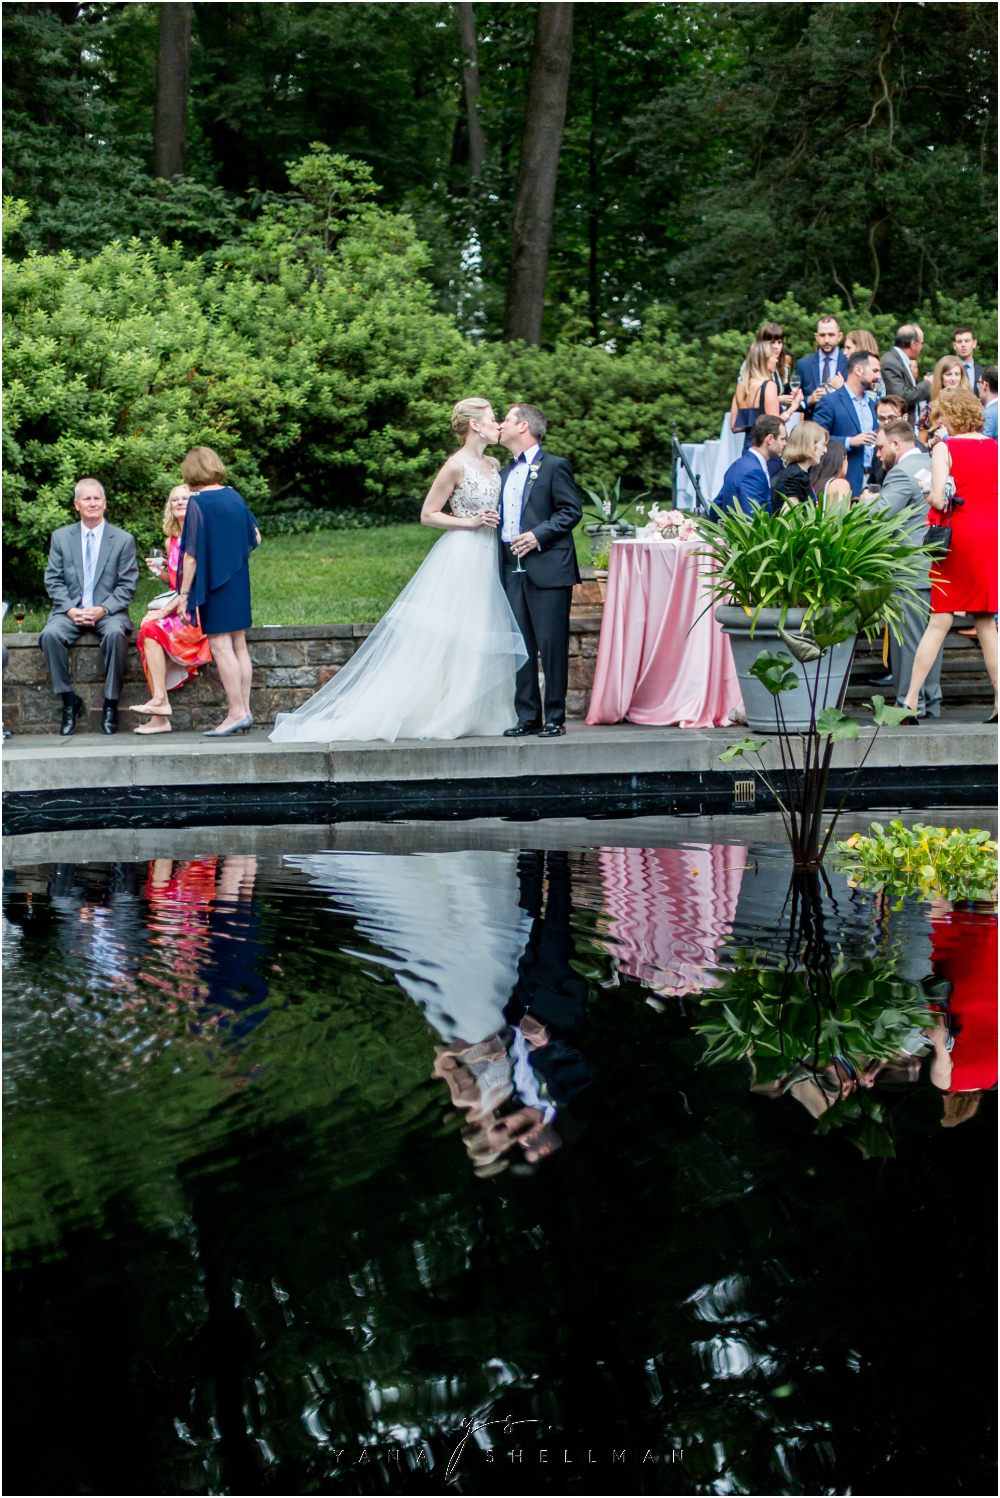 Winterthur Museum Wedding capture by the best Vineland Wedding Photographer - Carie+Kevin Wedding Photos